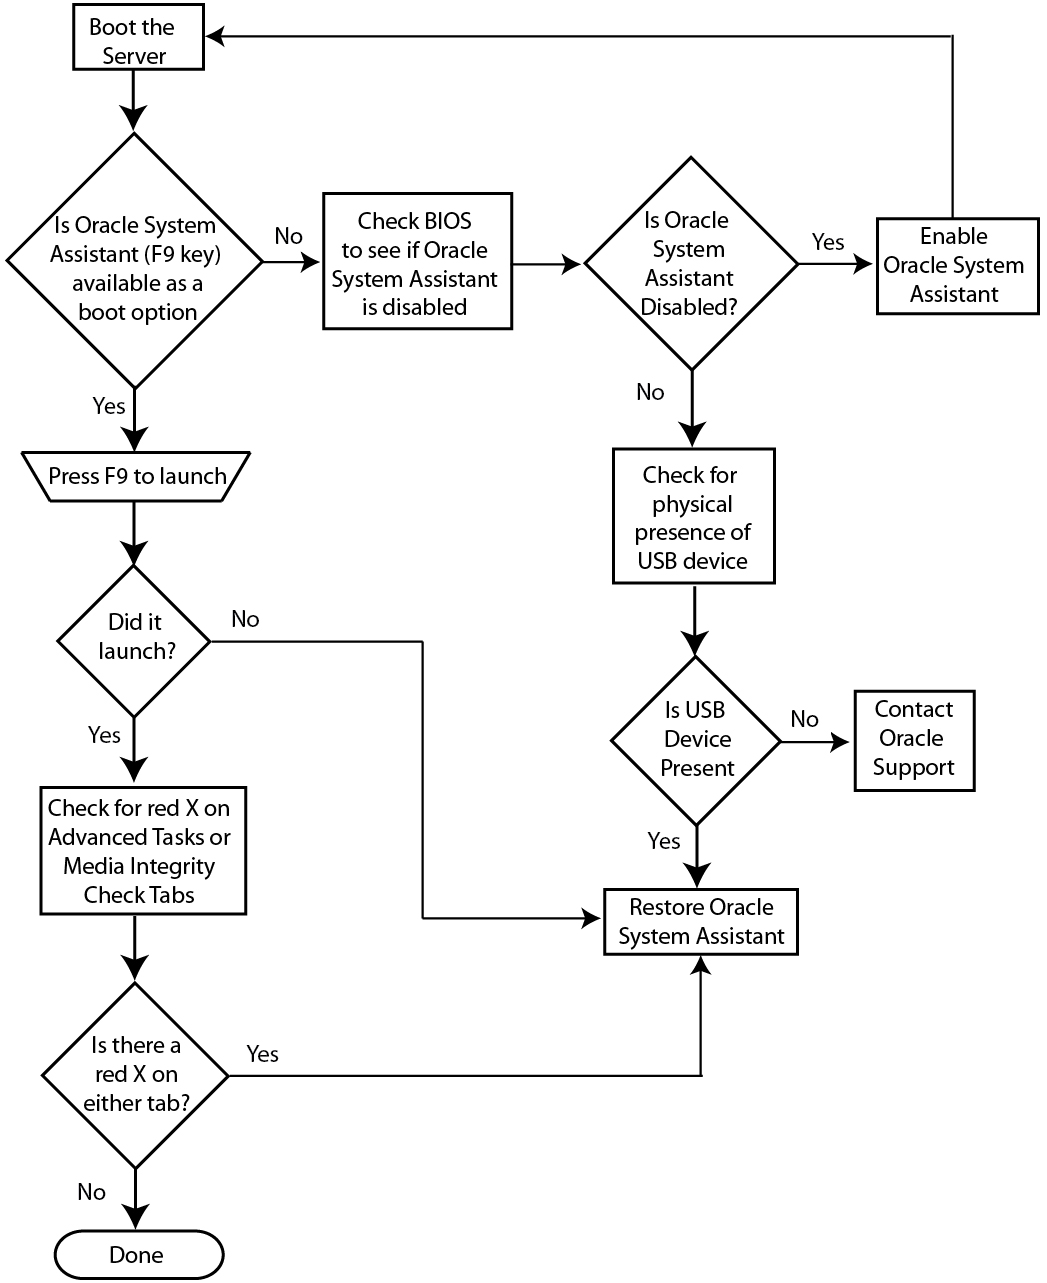 Troubleshooting Flowchart: Troubleshoot And Verify Oracle System Assistant